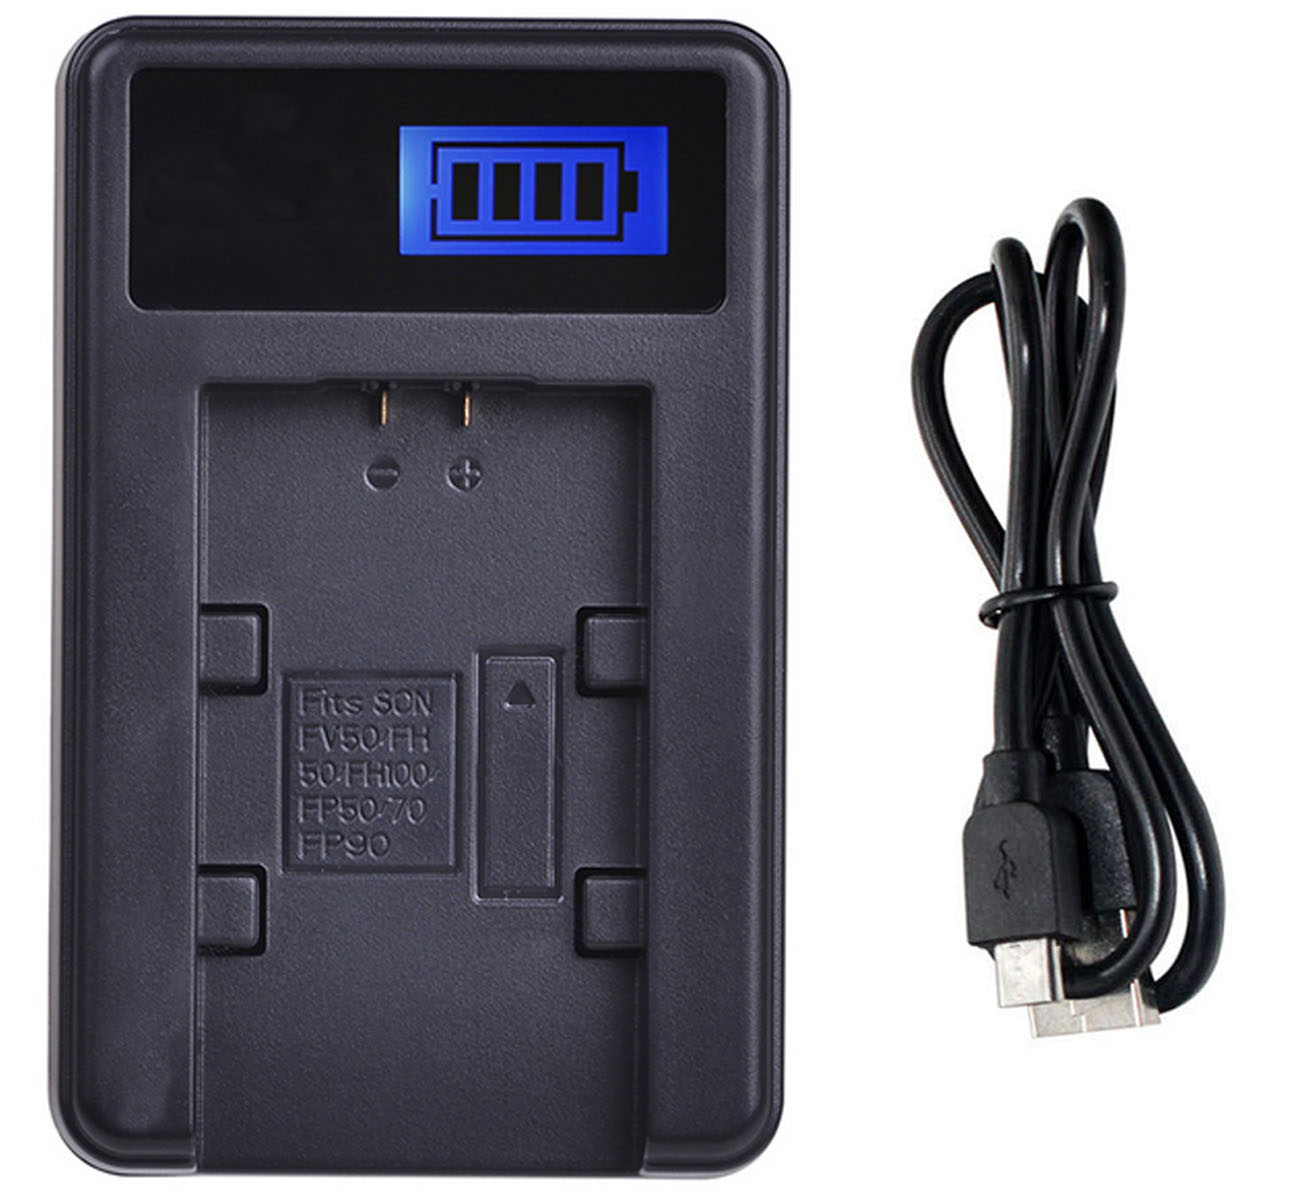 DCR-SR67E Handycam Camcorder Battery Pack for Sony DCR-SR62E DCR-SR65E